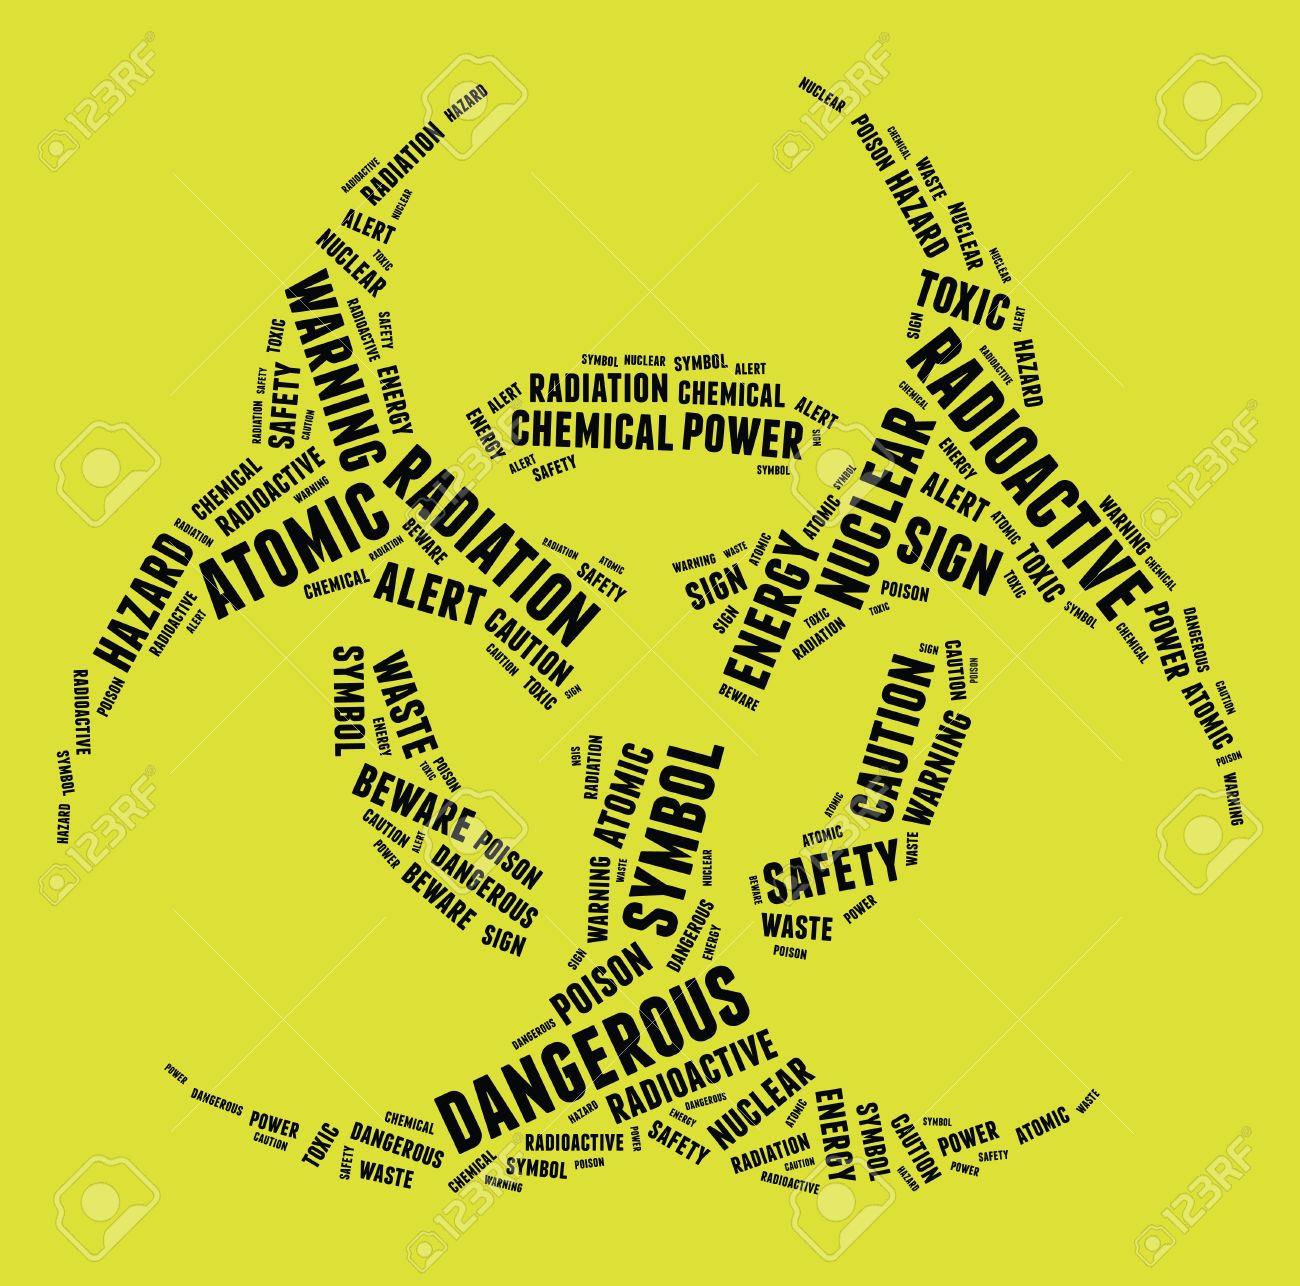 Bio hazard warning sign symbol in text illustration on yellow bio hazard warning sign symbol in text illustration on yellow background stock illustration 13183532 biocorpaavc Images